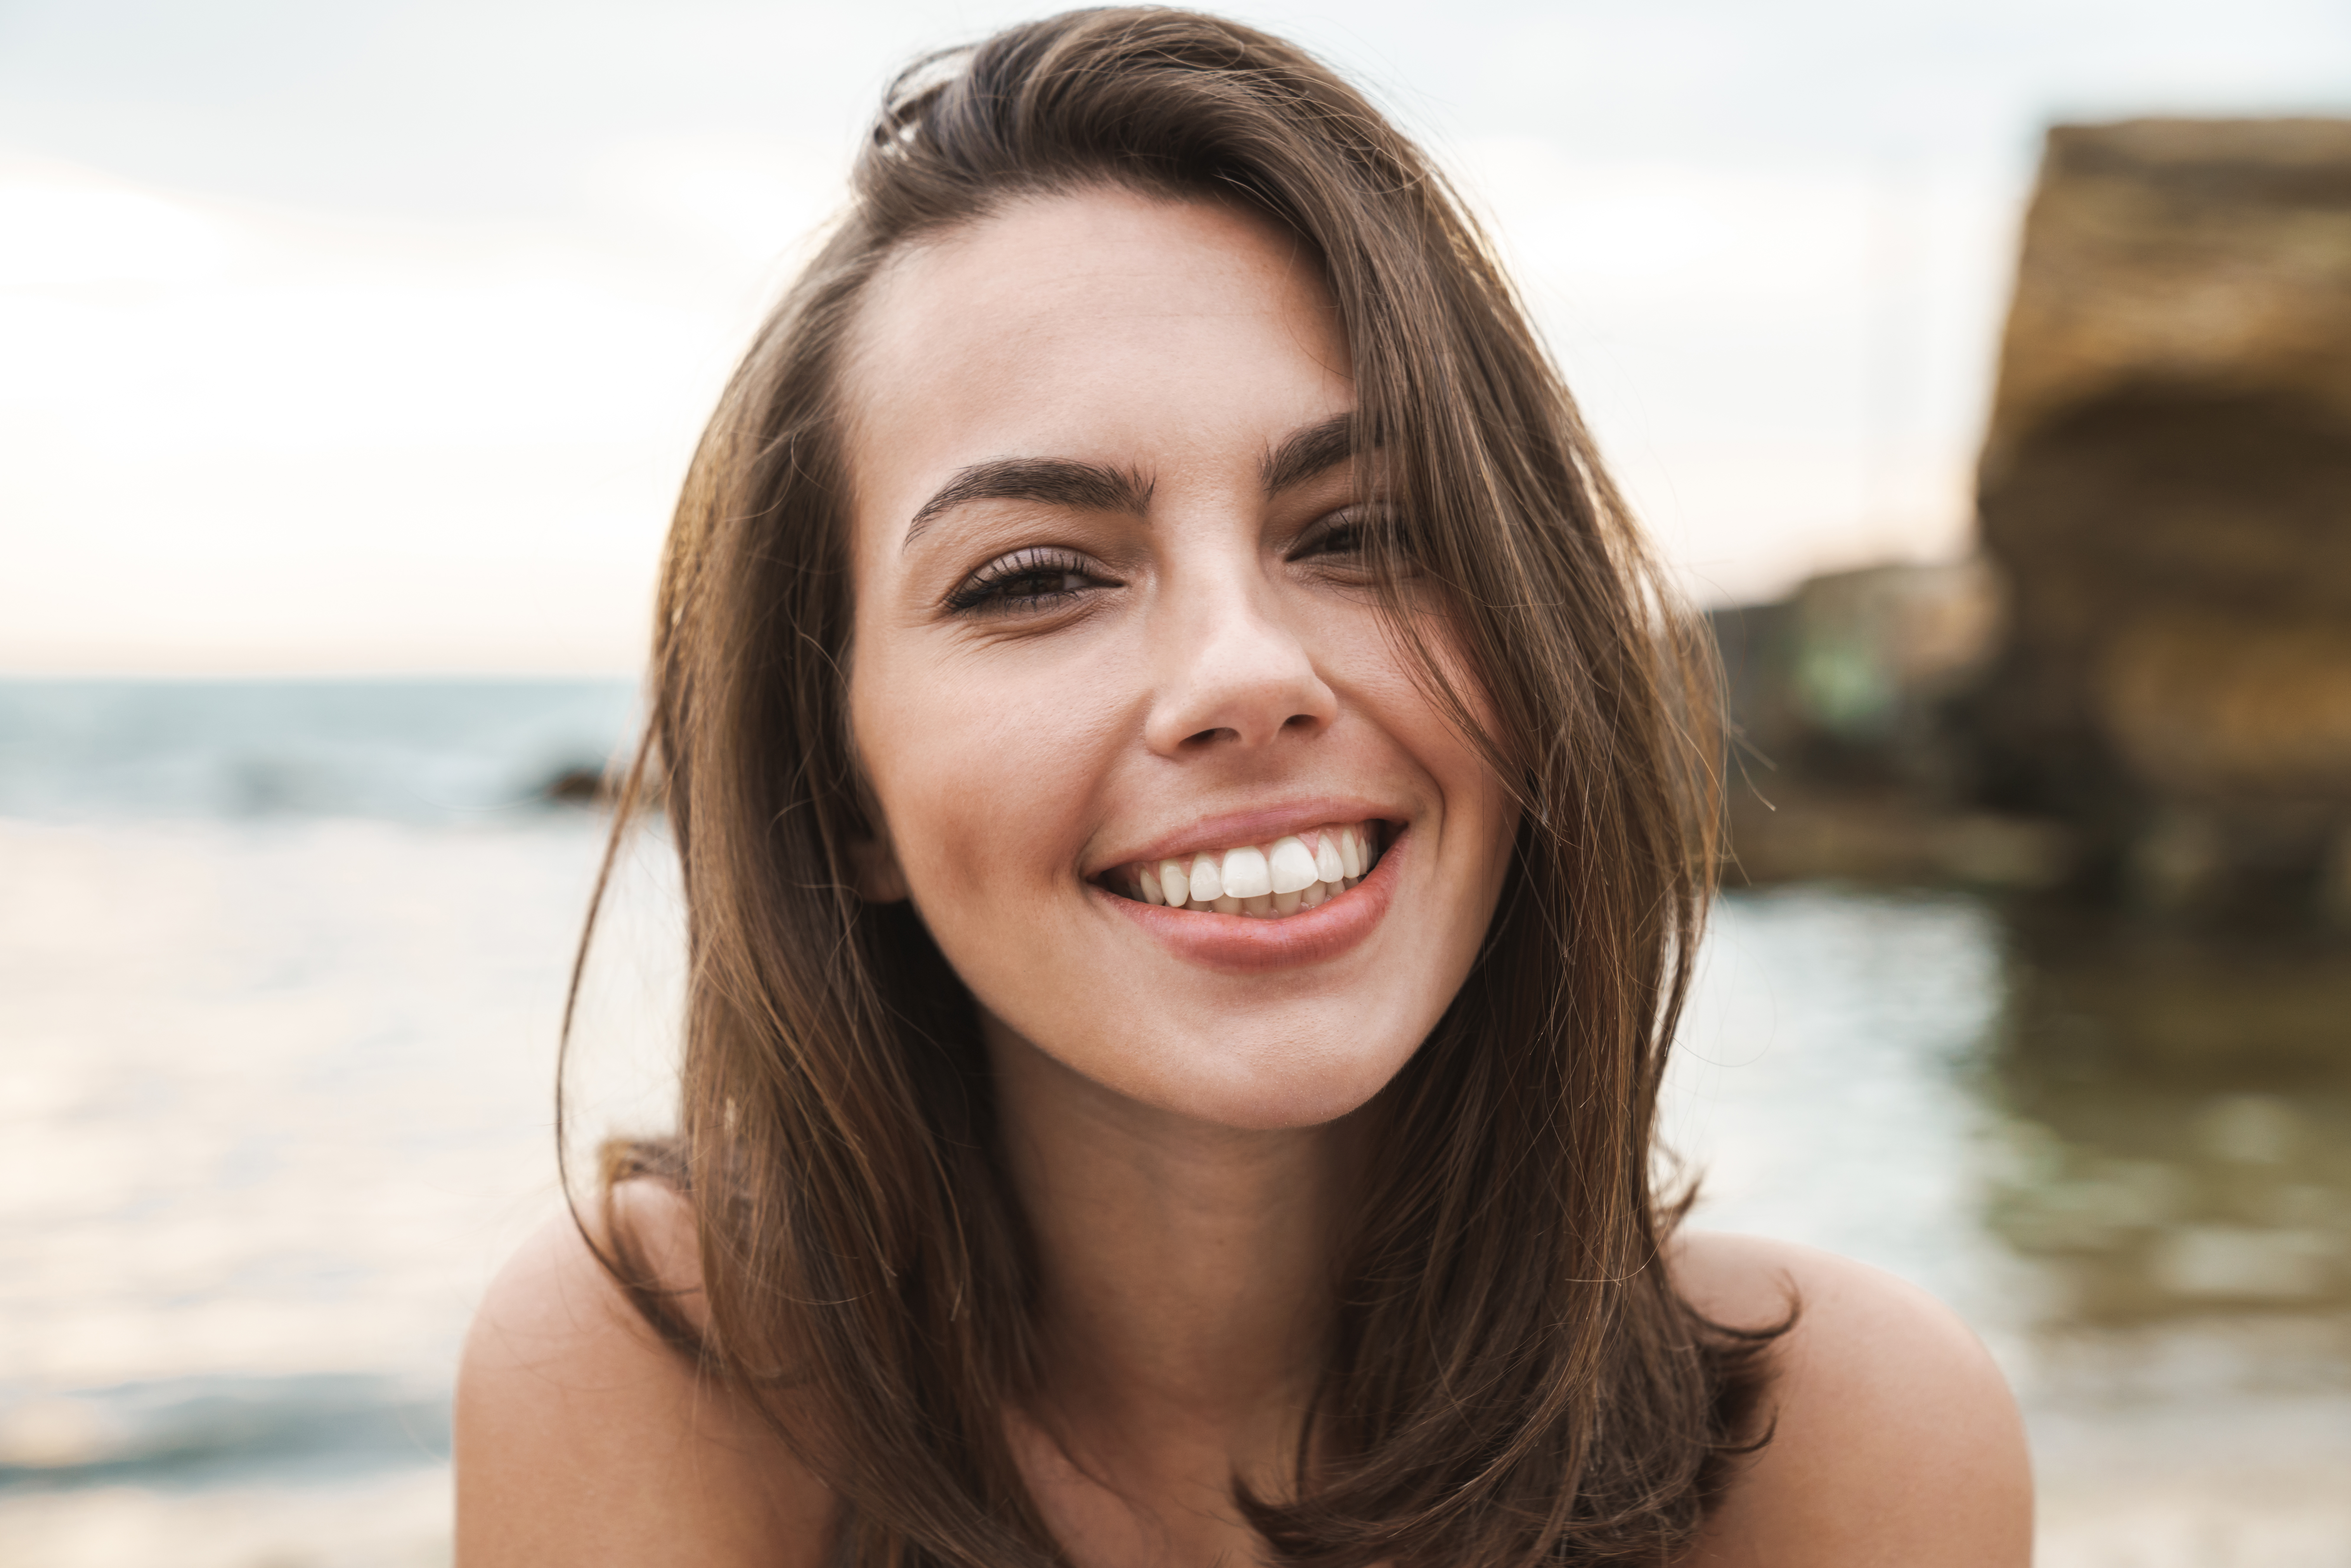 How to straighten your smile without braces